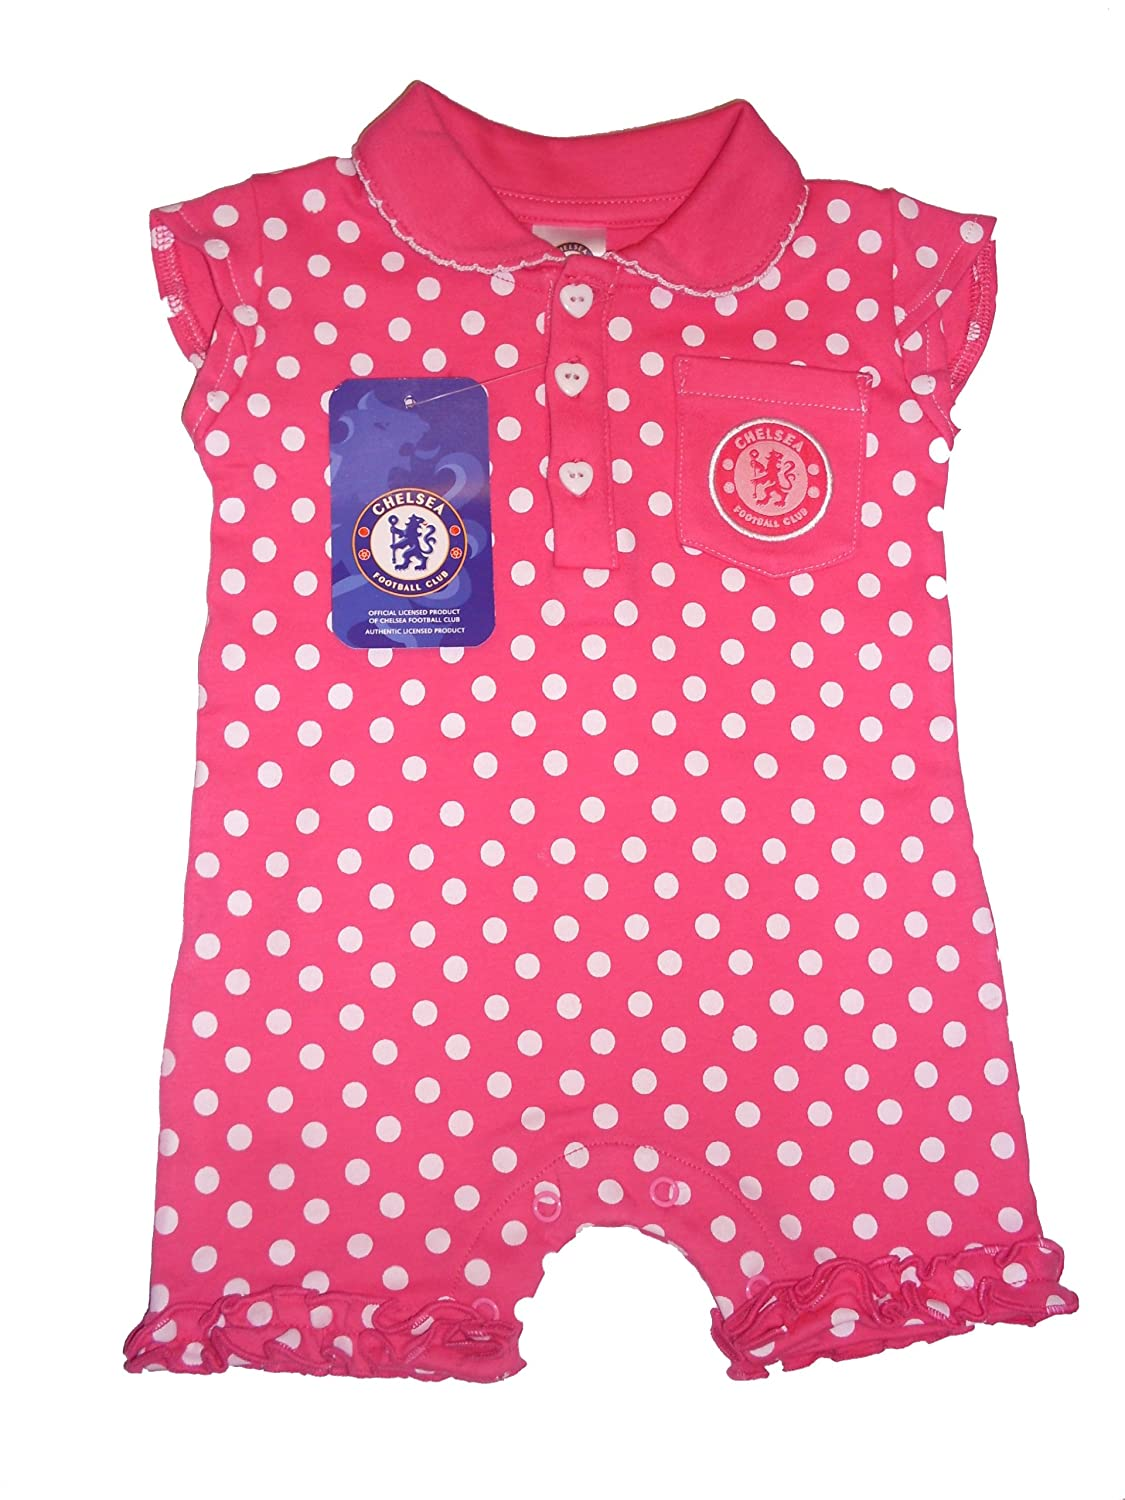 1b4b37d2d Chelsea Football Club Baby Girl s Spotty Romper Pink and White 0 - 3 ...